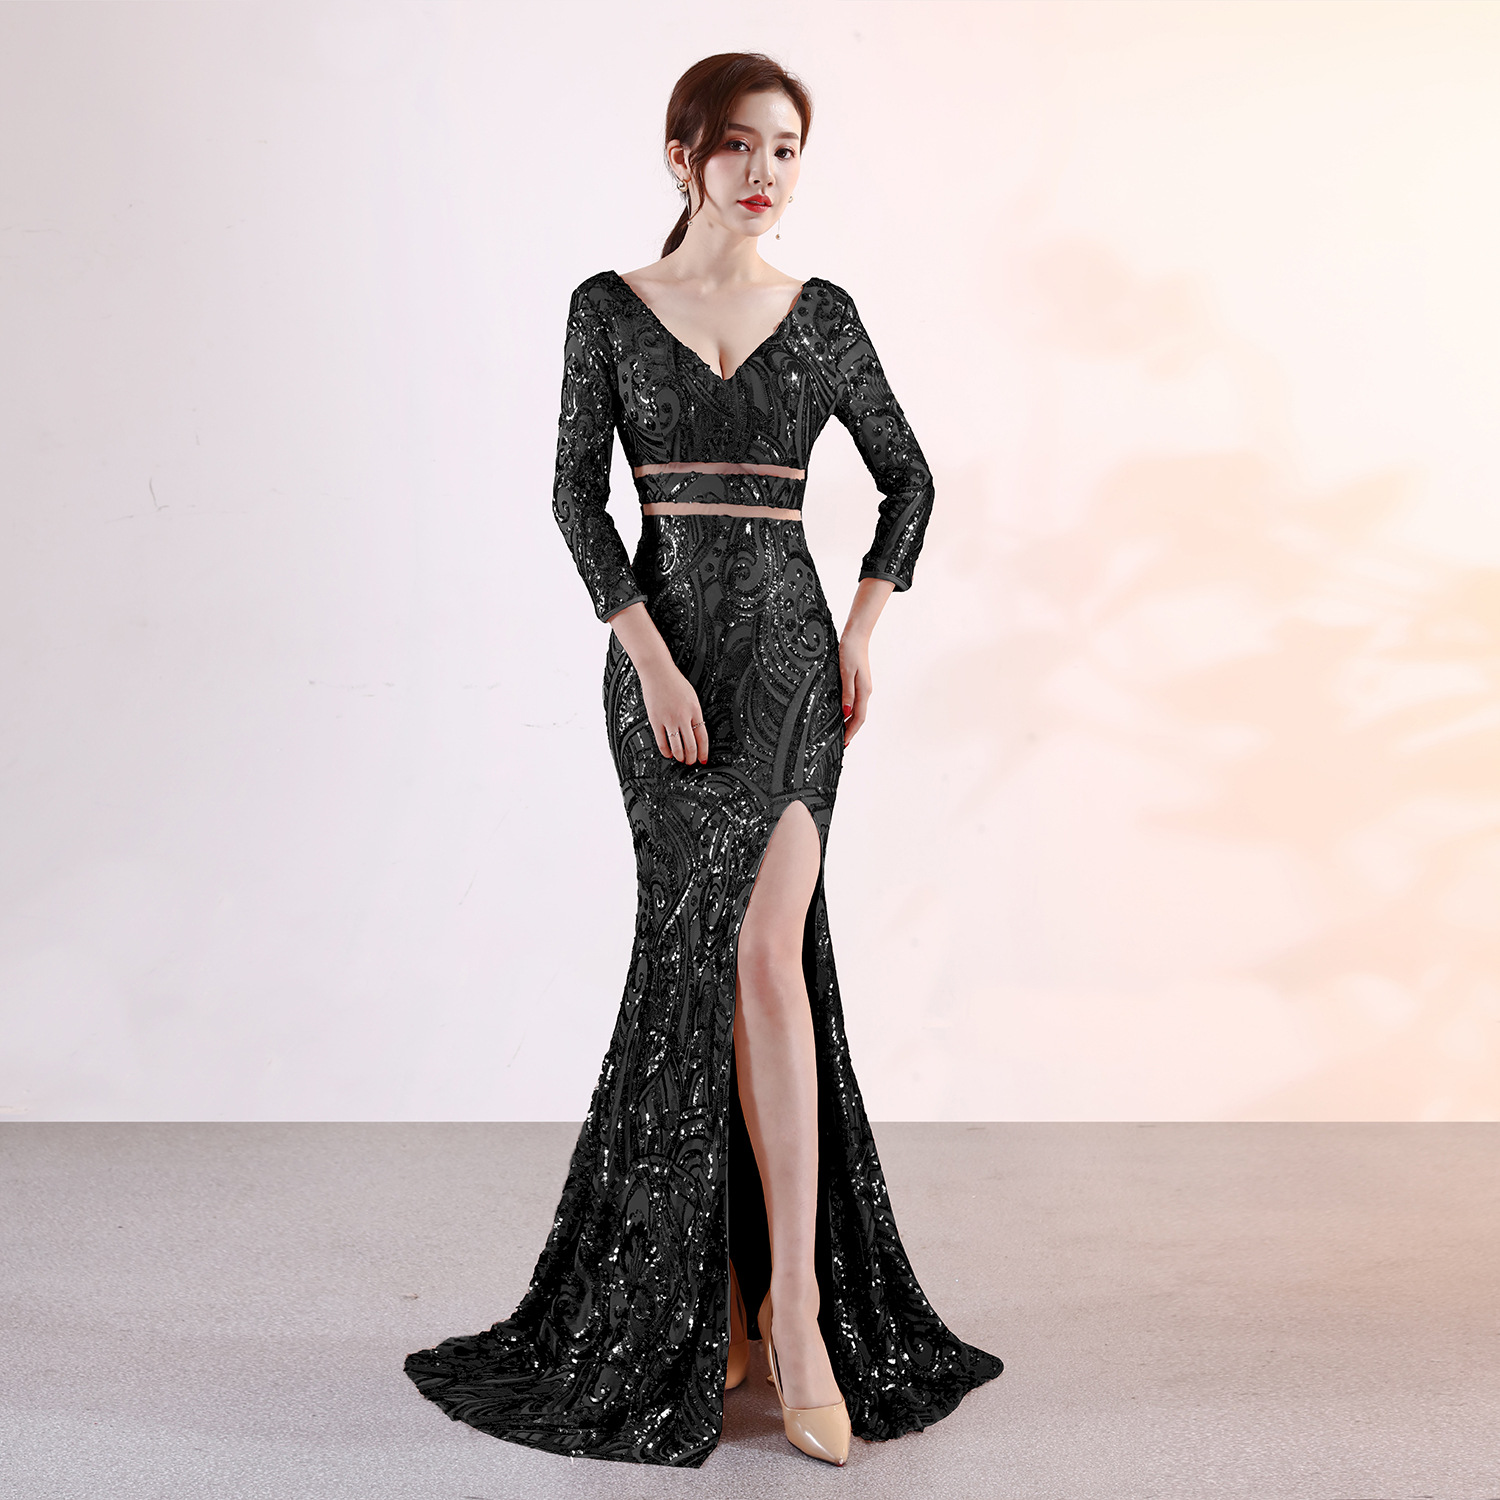 Fishtail Sexy V Neck Split Long Sleeve Mermaid Evening Dresses 2019 Elegant Party Gowns Glitter Gold Silver Black Prom Dress